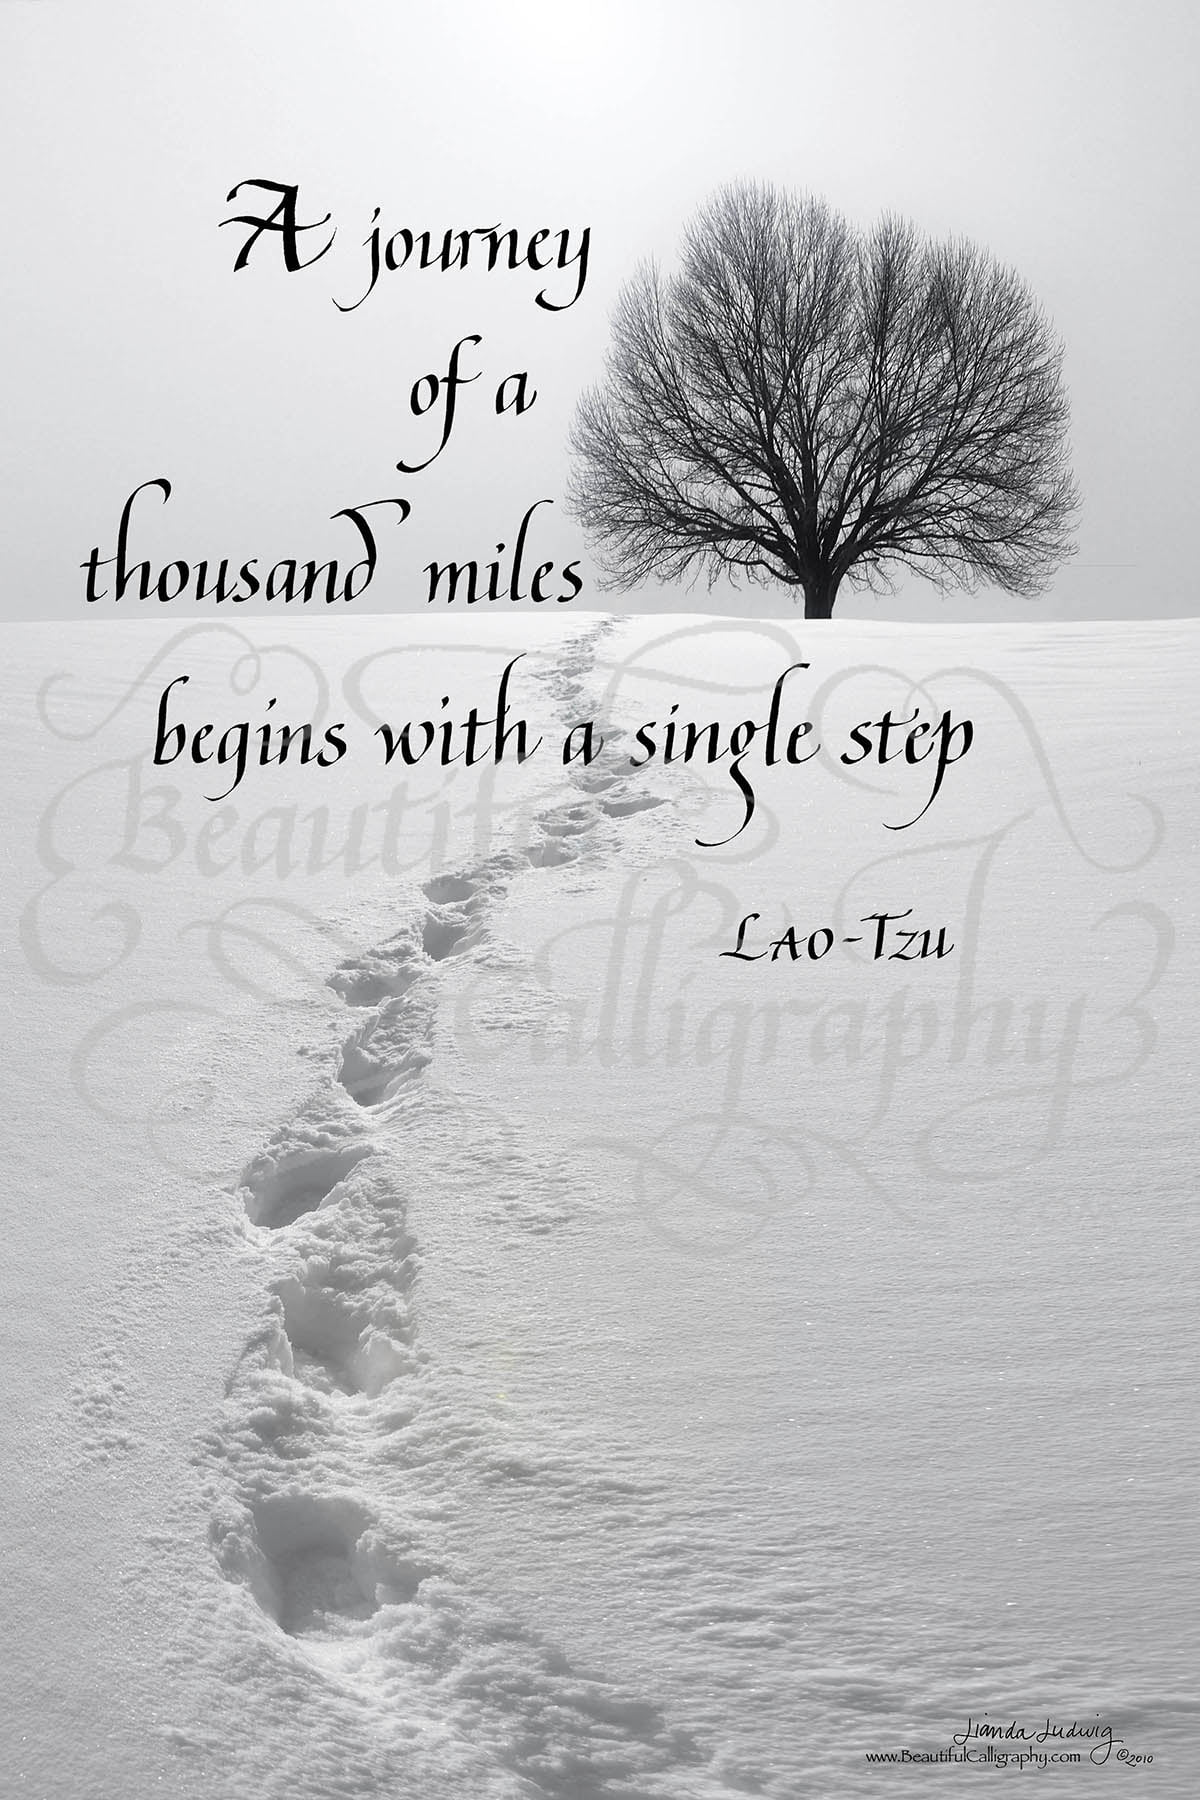 A journey of a thousand miles inspirational quote by Lao-Tzu in calligraphy